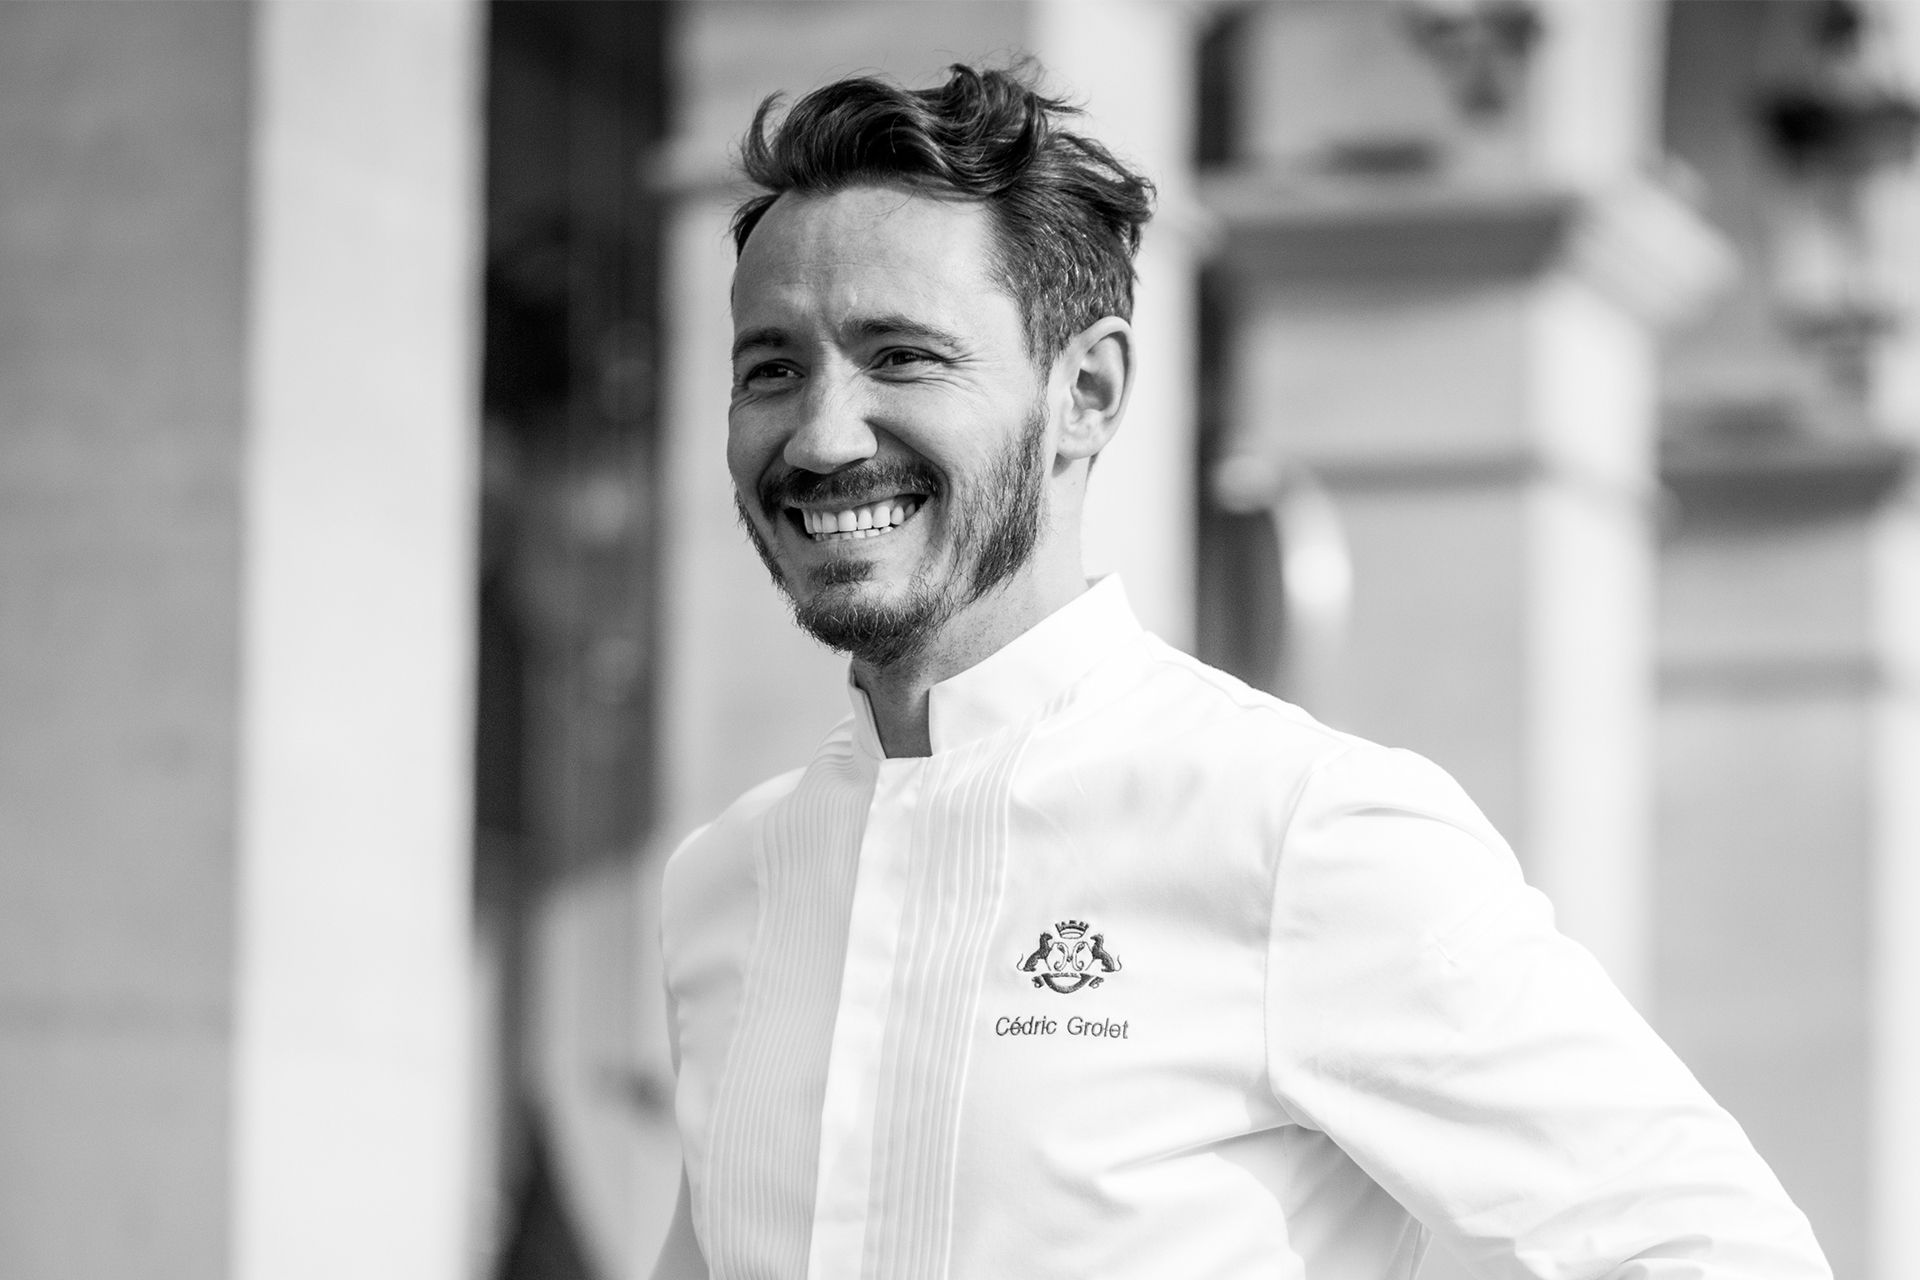 Hits from the kitchen: Cédric Grolet on music and food